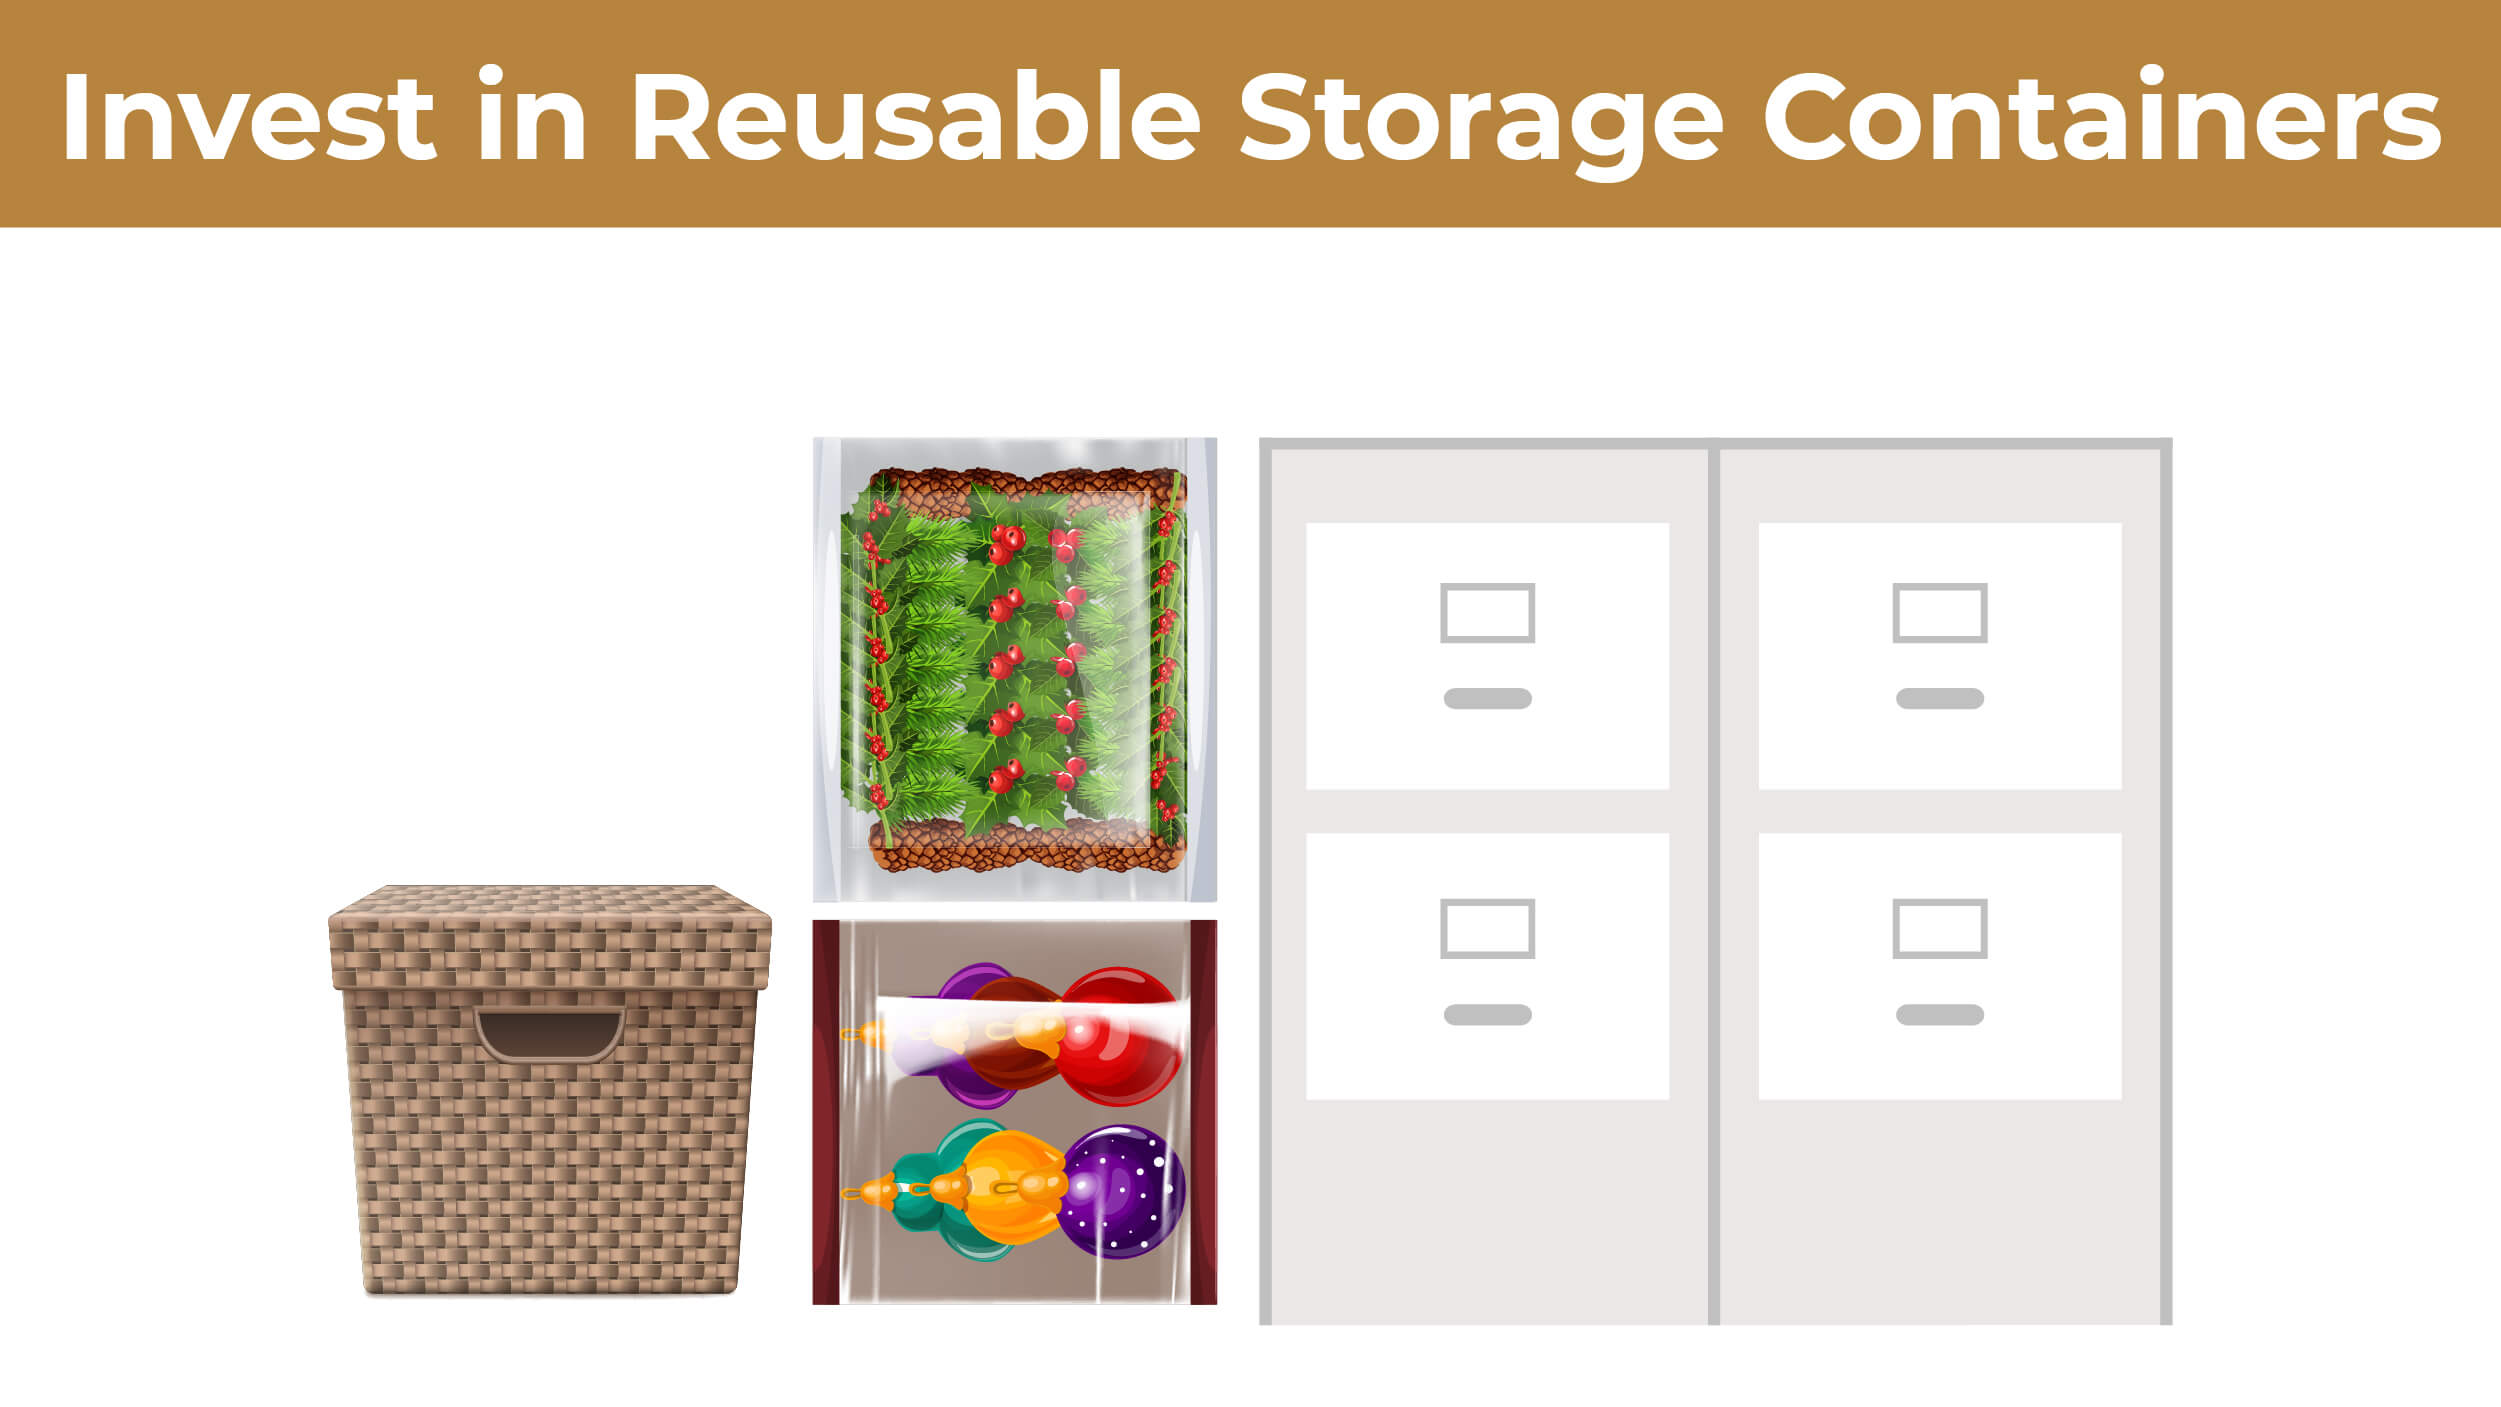 A collection of reusable storage containers including plastic totes, filing cabinets, and baskets.